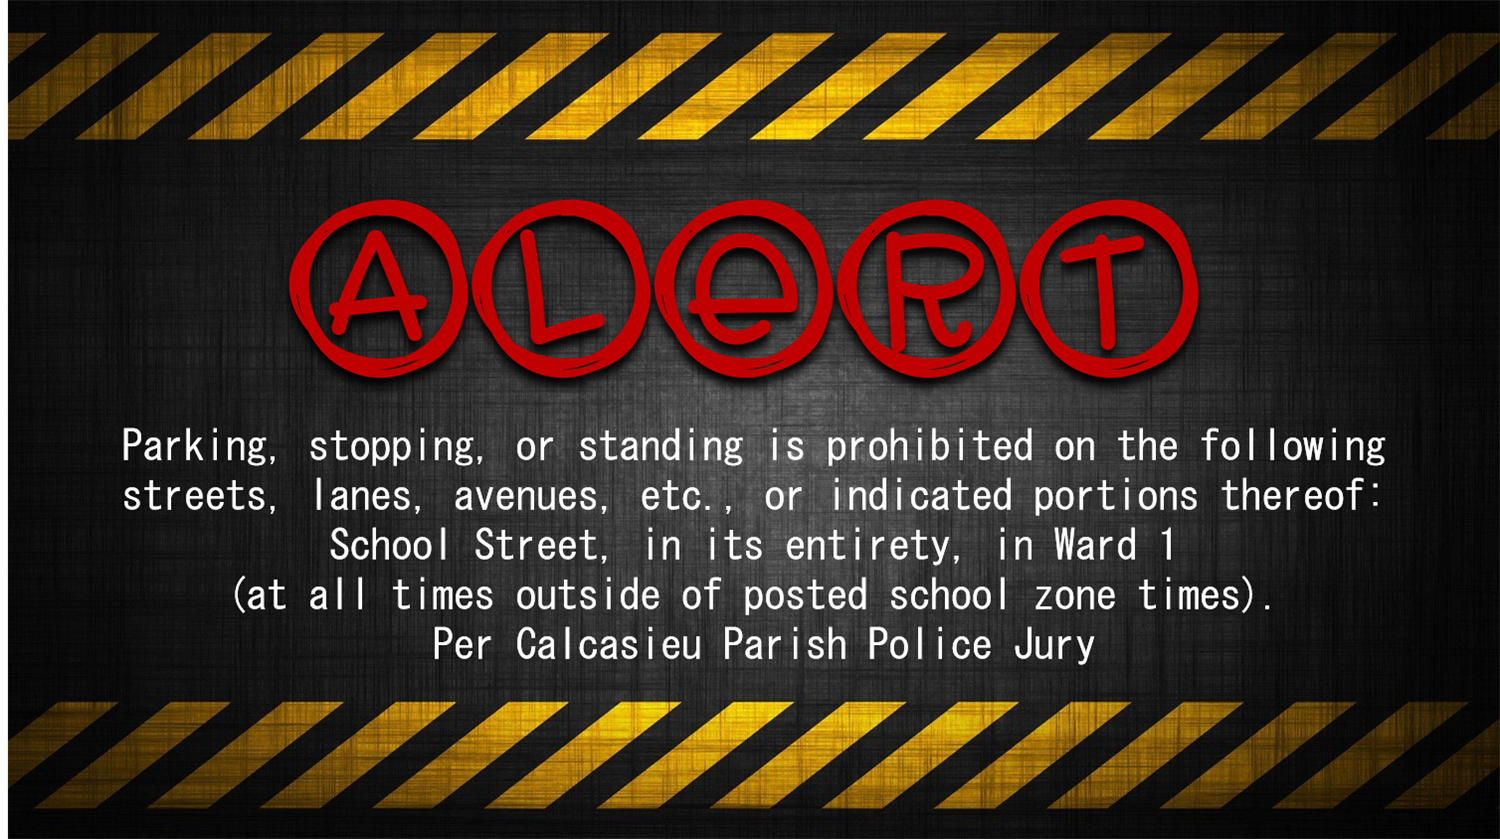 ALERT Please be advised of the ordinance from Calcasieu Parish Police Jury